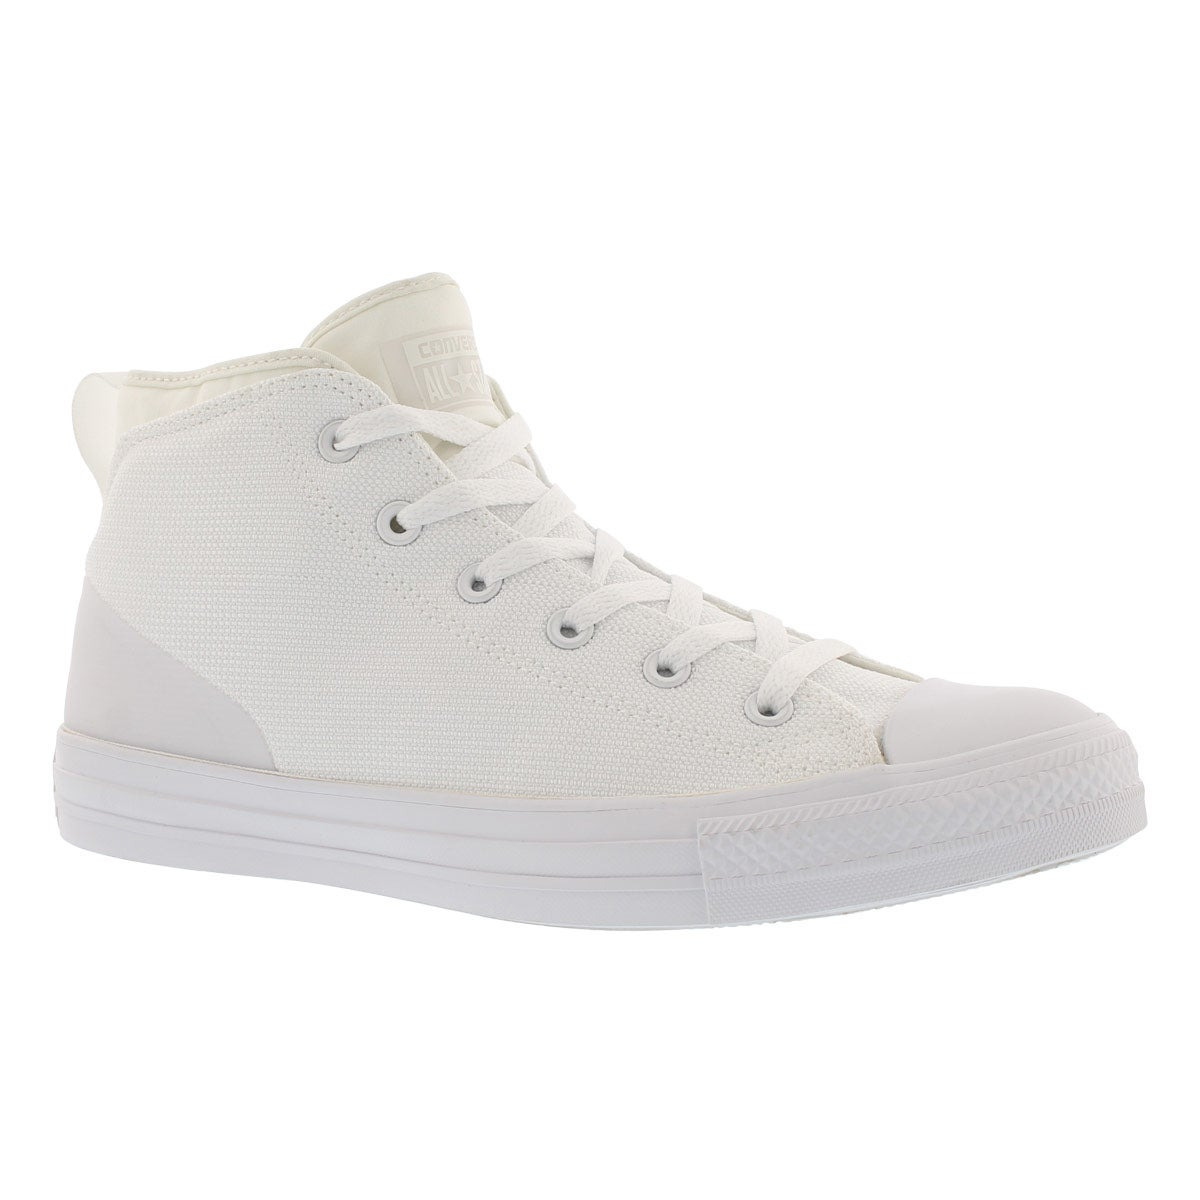 Men's CT ALL STAR SYDE STREET white sneakers